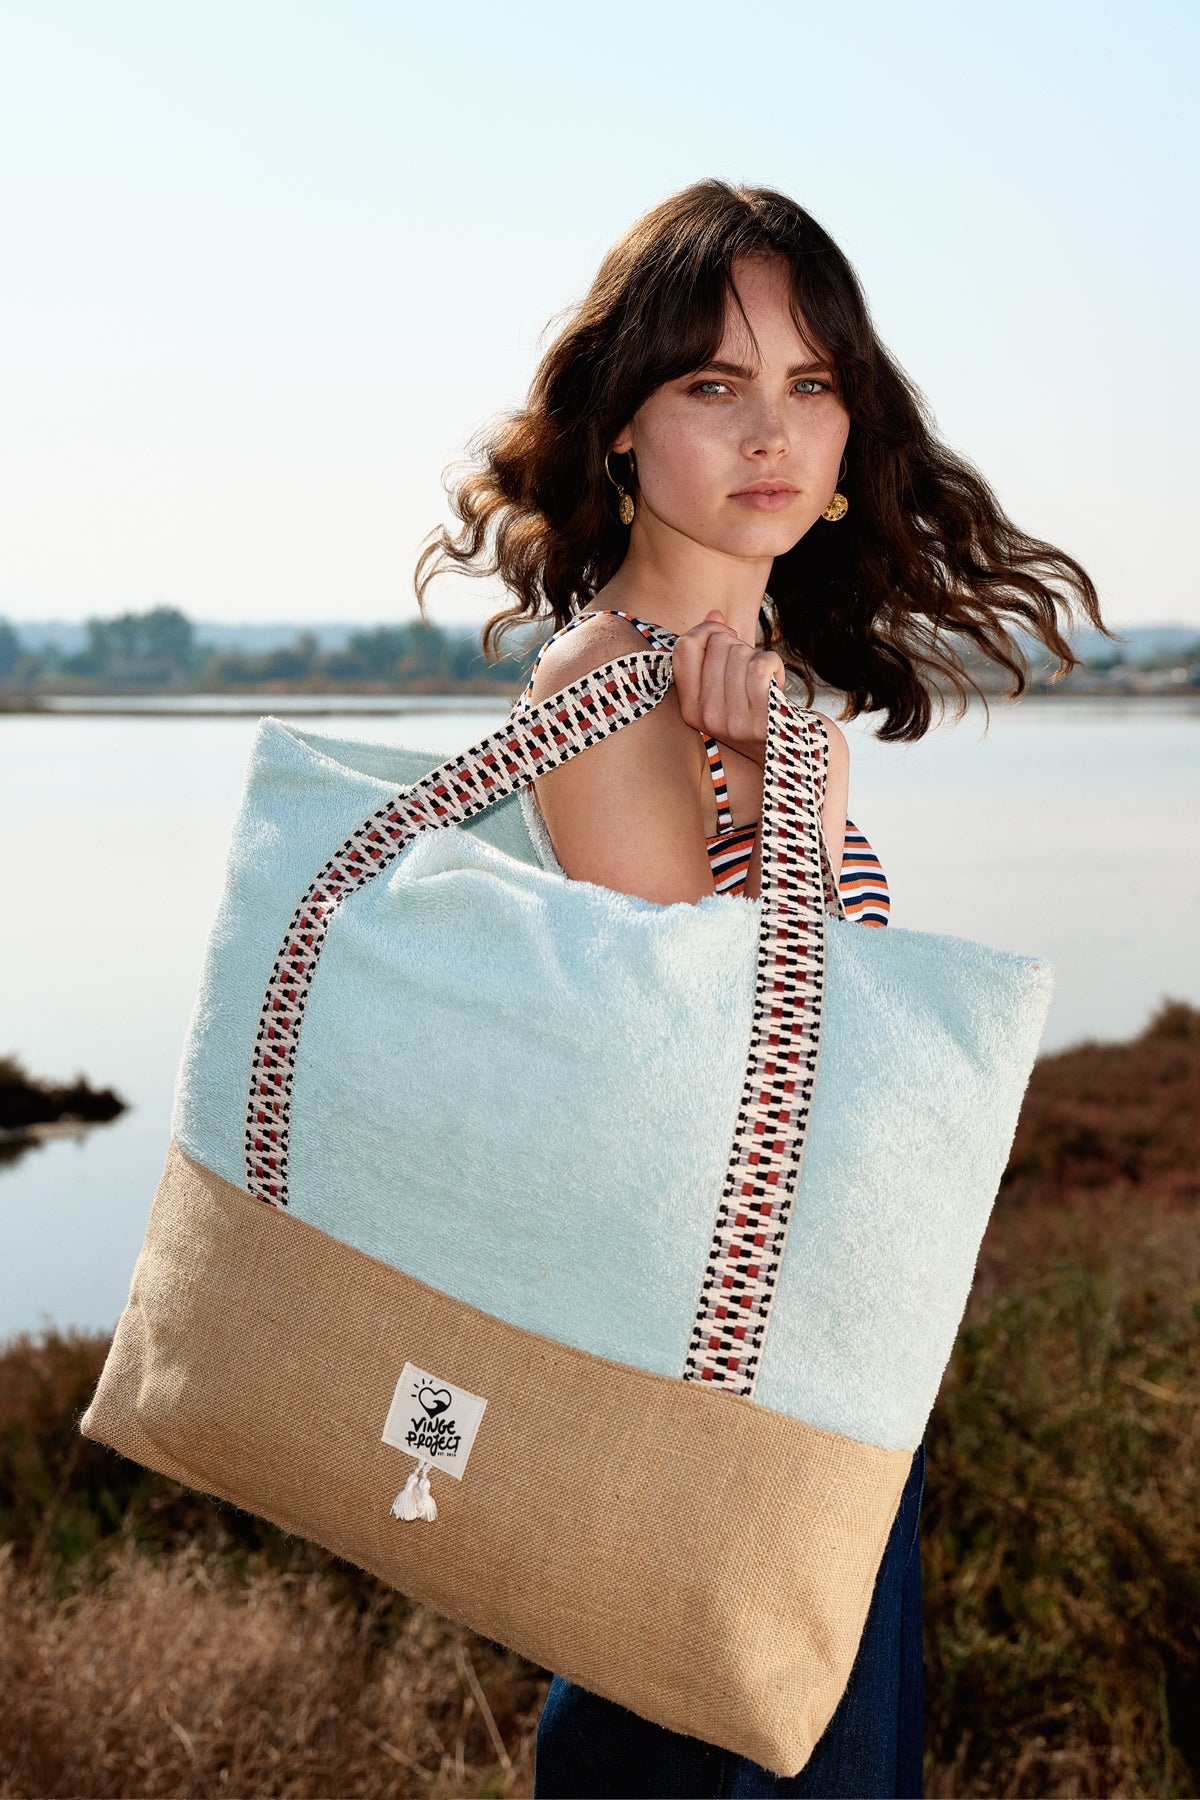 Pistachio - Oversized Beach Bag